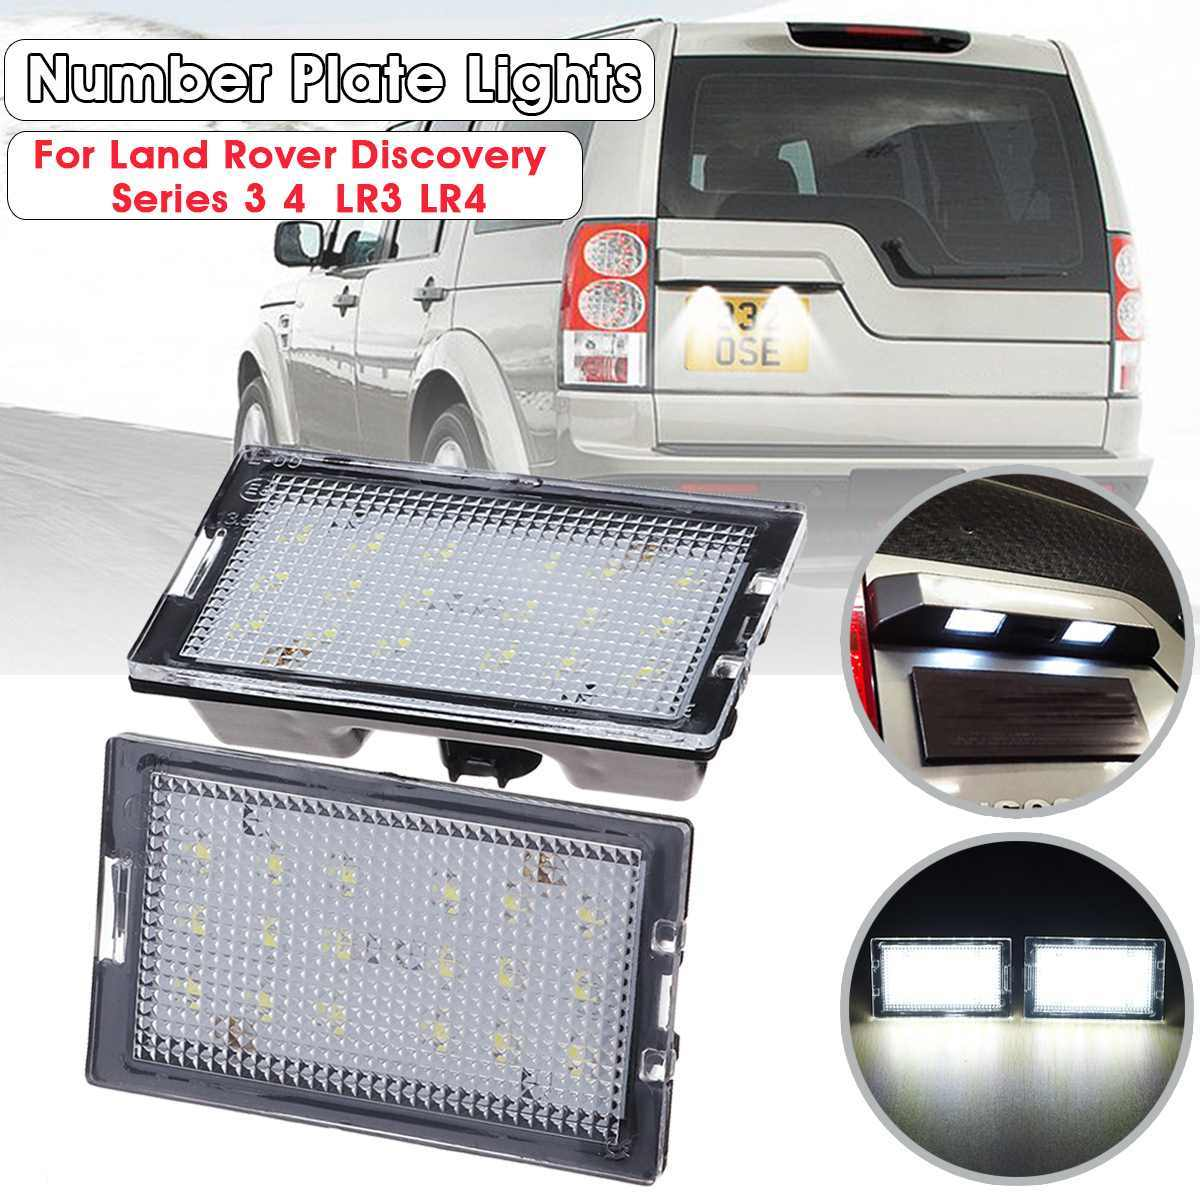 Pair LED license Number Plate Light Lamp For Land Rover Discovery Series 3/LR3 4/LR4 Freelander 2/LR2 Range Rover Sport